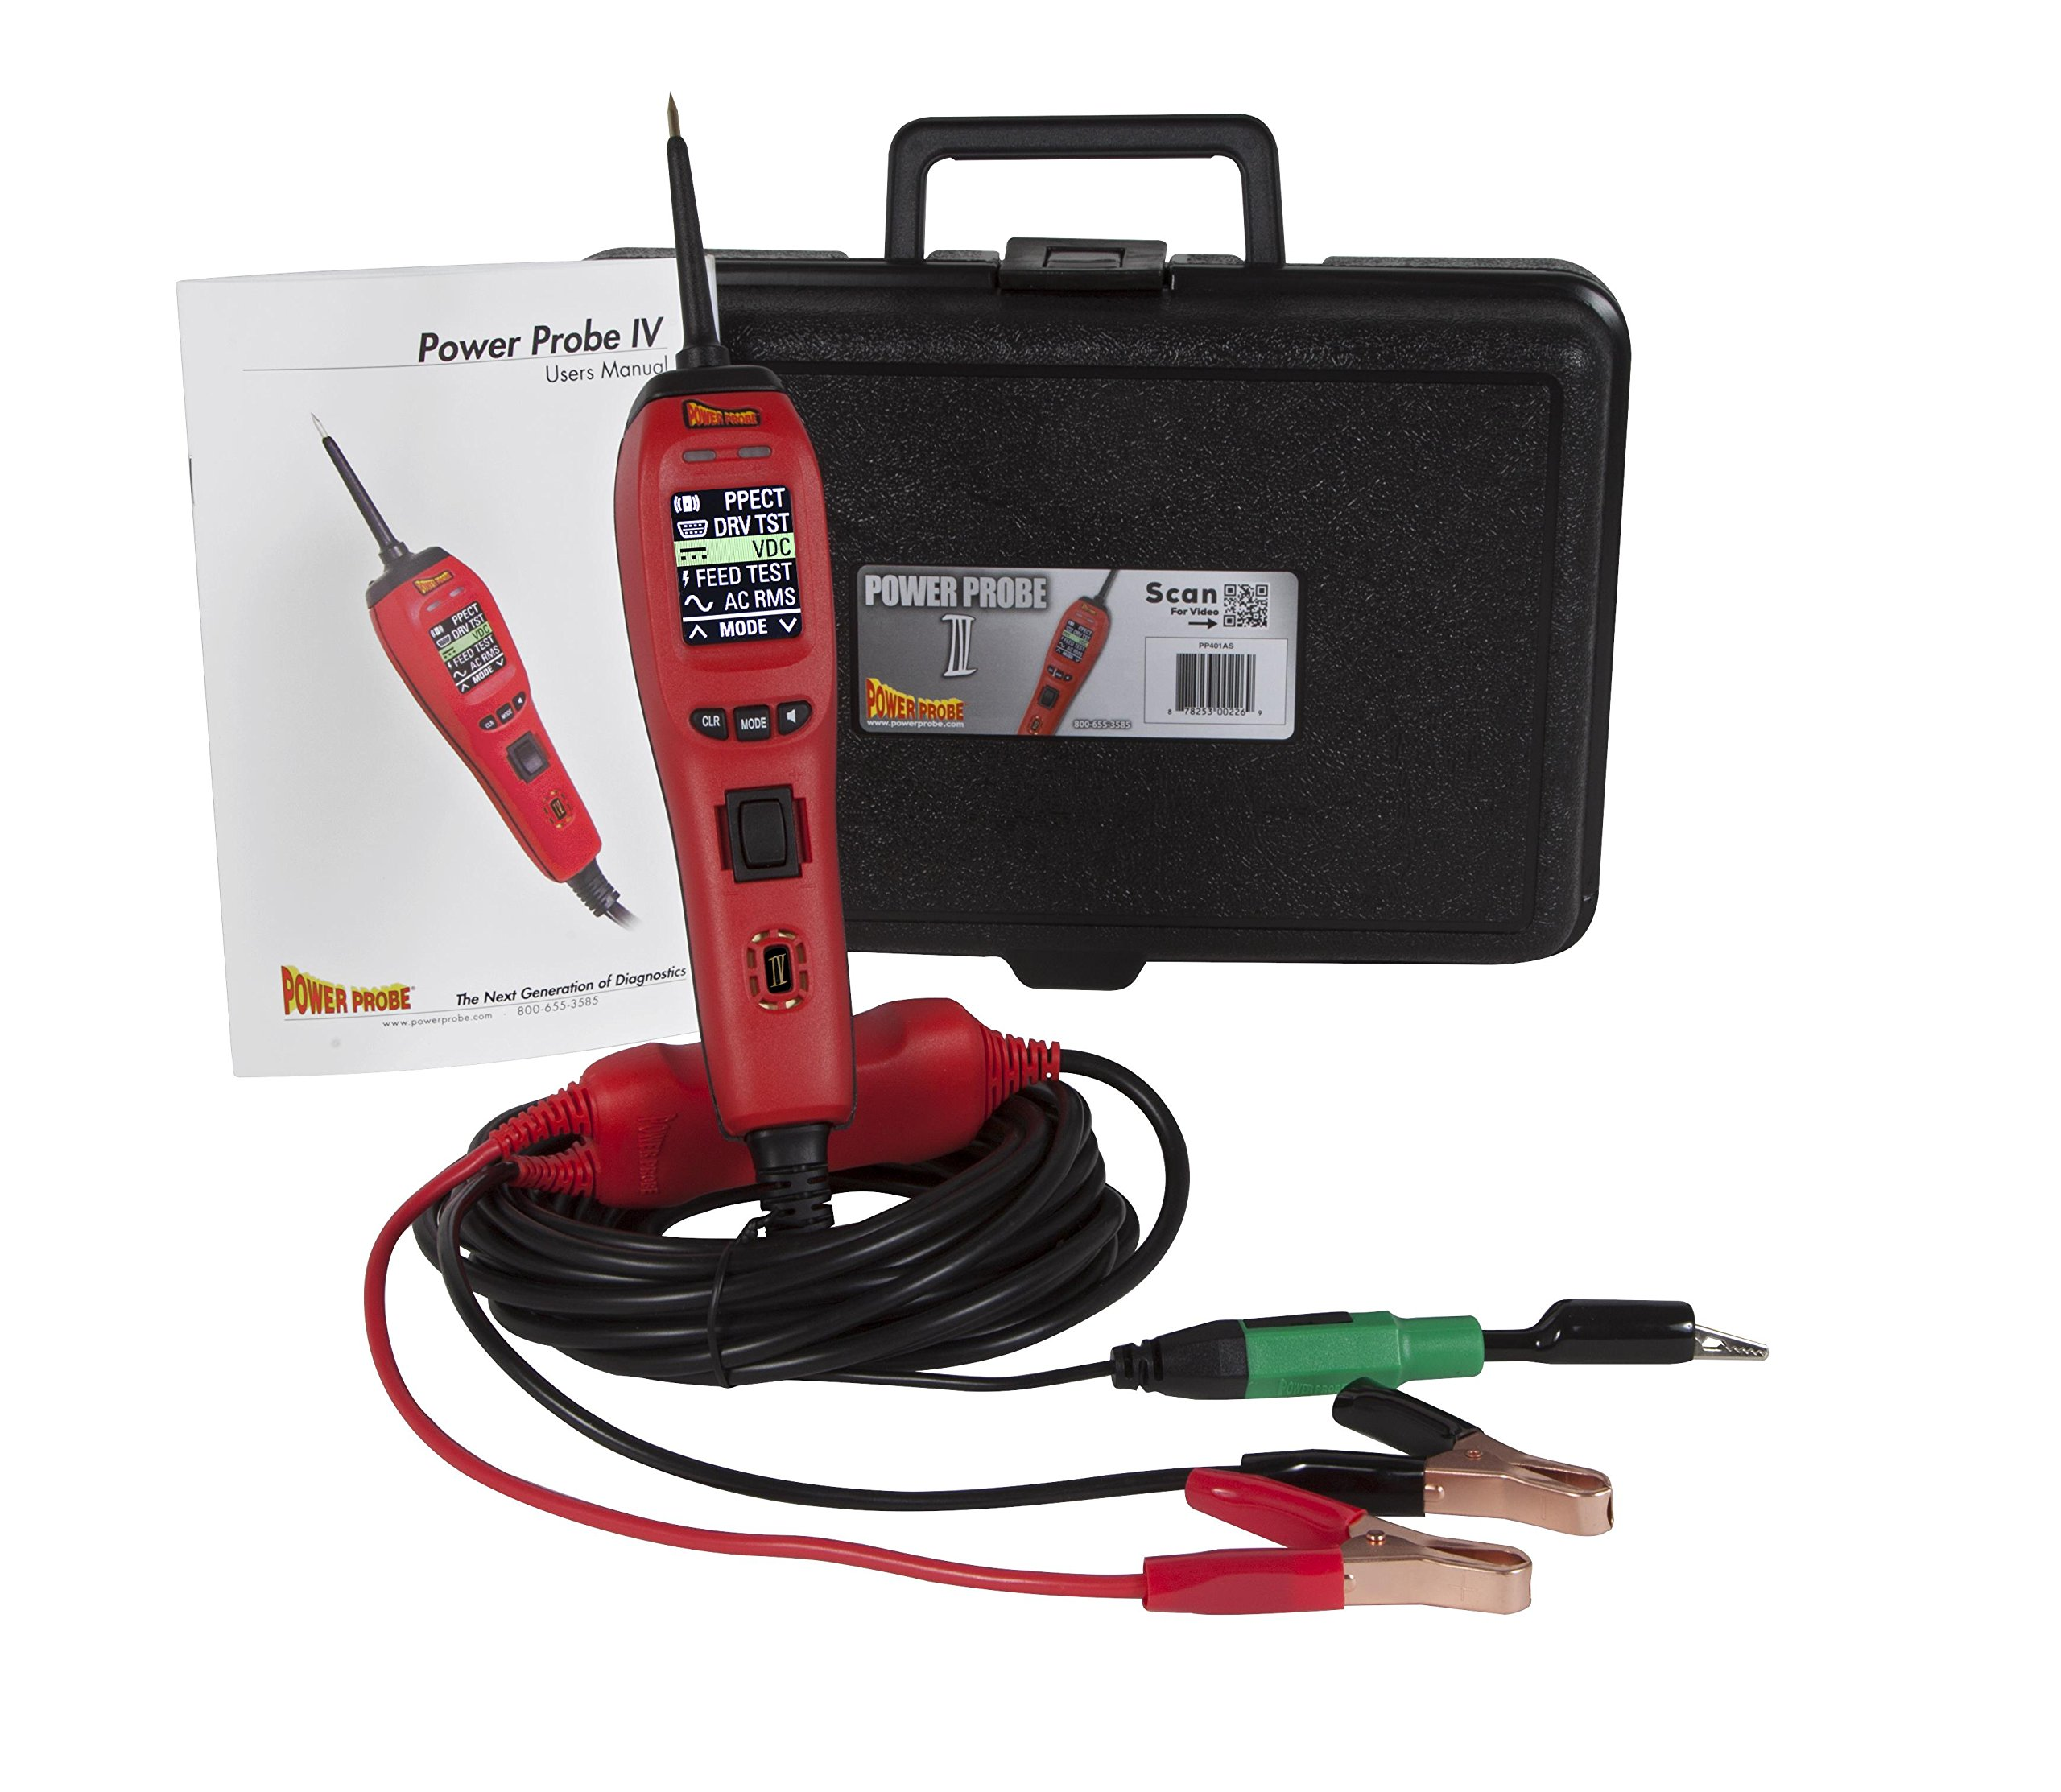 Power Probe Iv Wcase Acc Red Pp401as Car Details About Gearwrench 2524d Short Circuit Detector Best Rated In Diagnostic Test Tools Helpful Customer